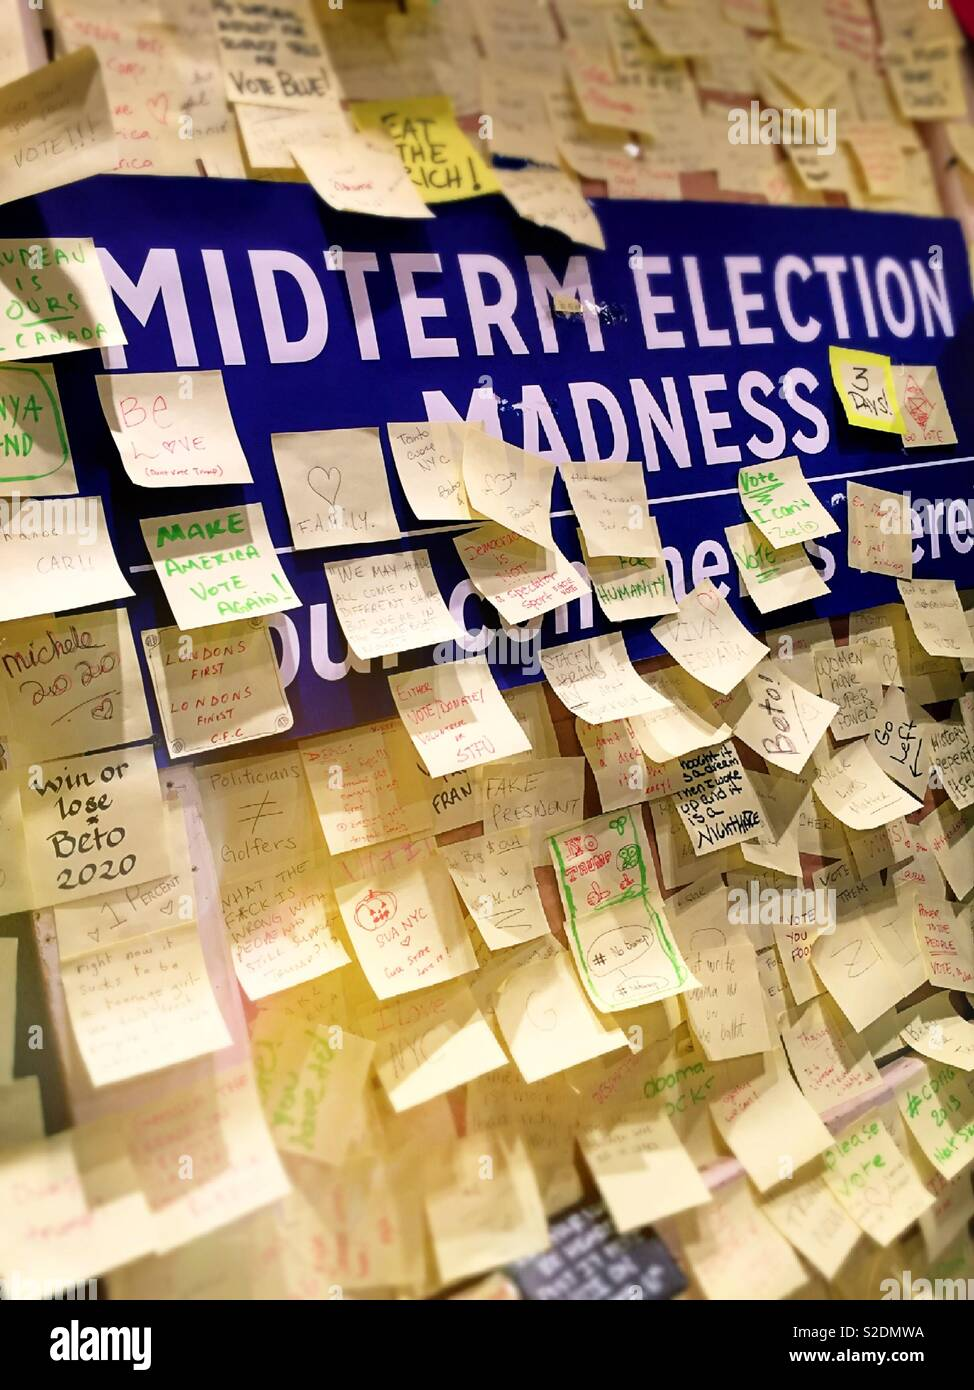 Public bulletin board soliciting comments on the 2018 midterm election, NYC, USA - Stock Image